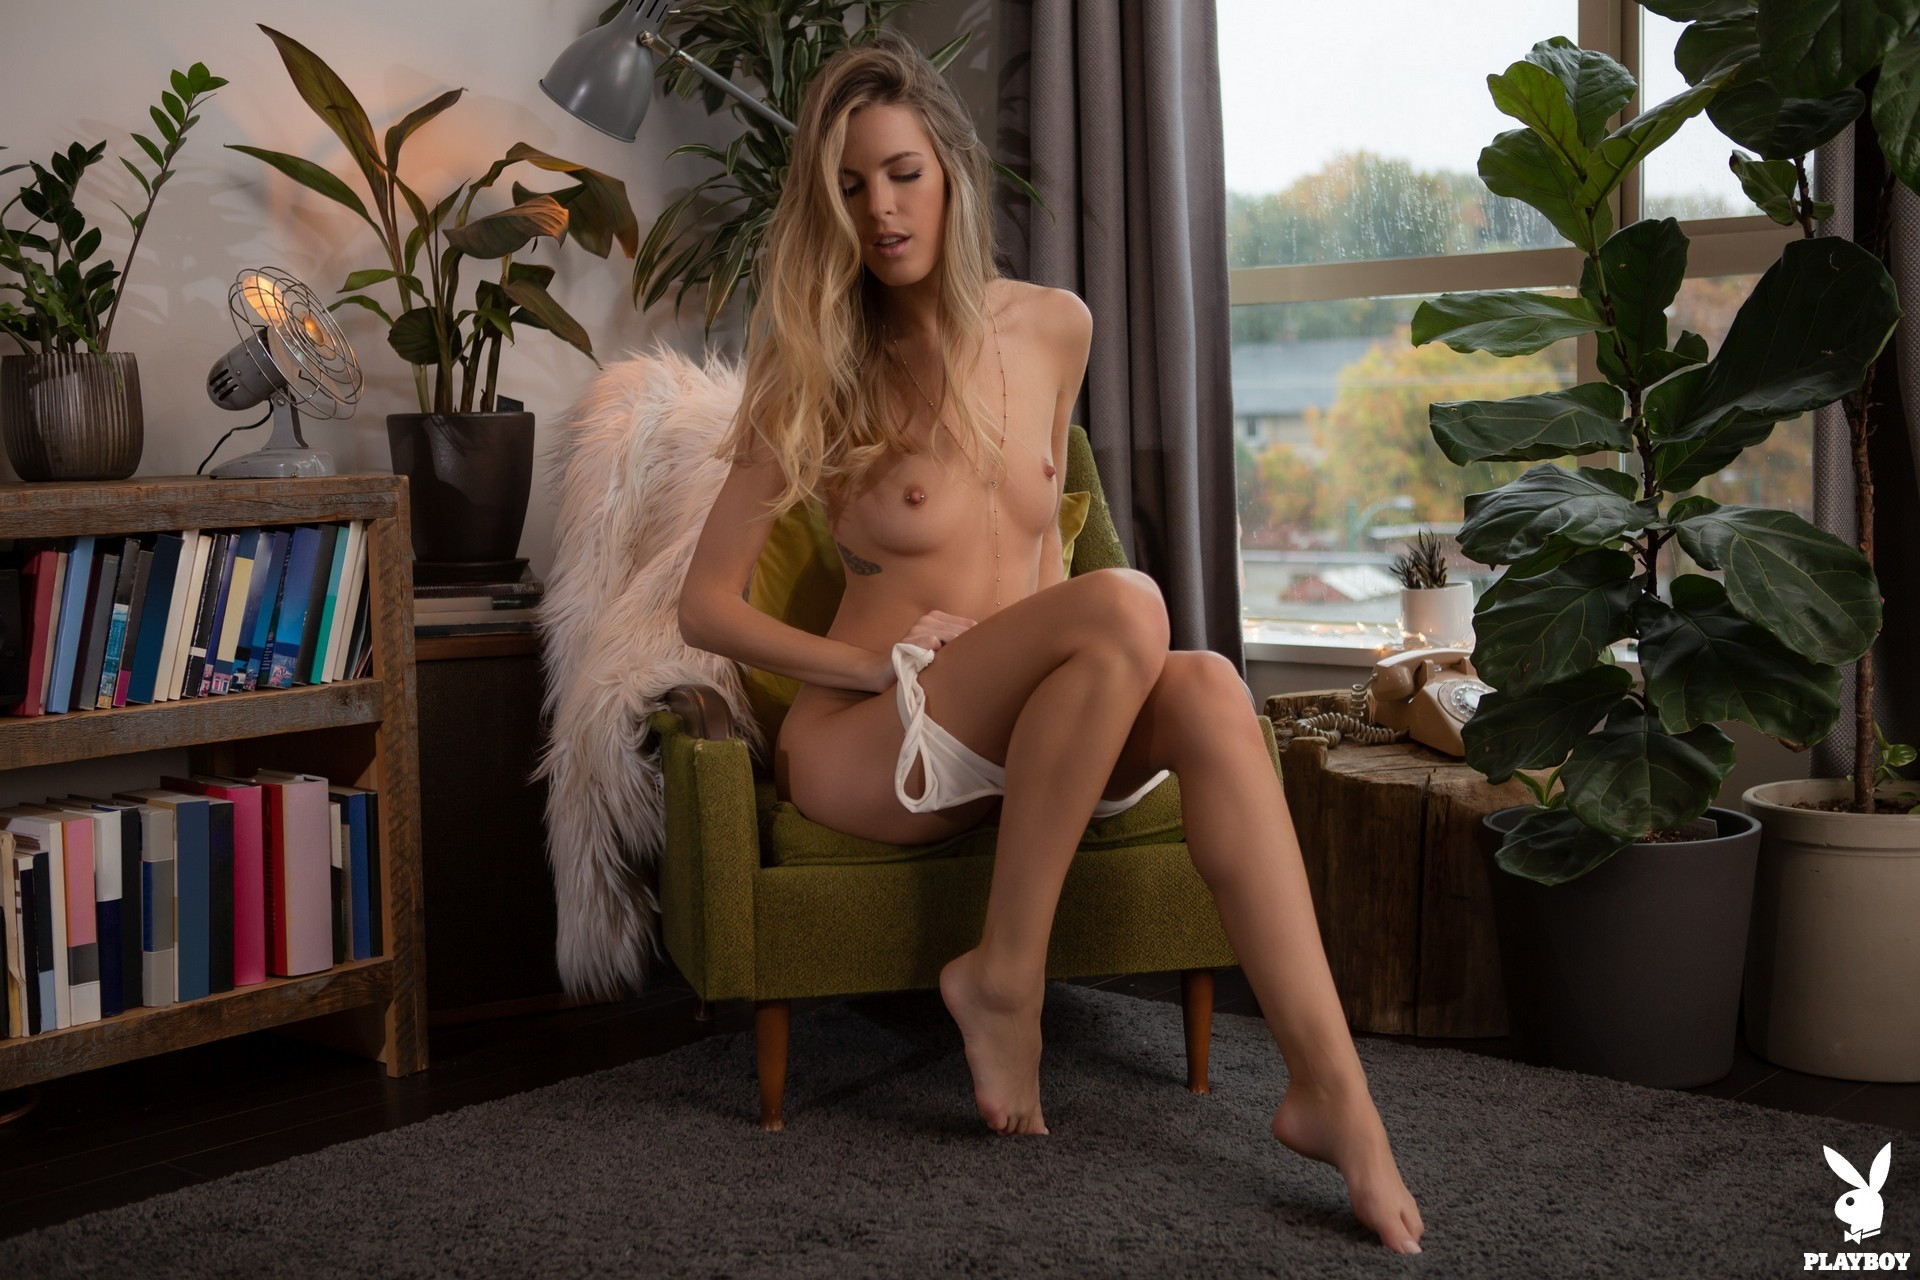 Hailey Afton in Call on Me - Playboy Plus 18